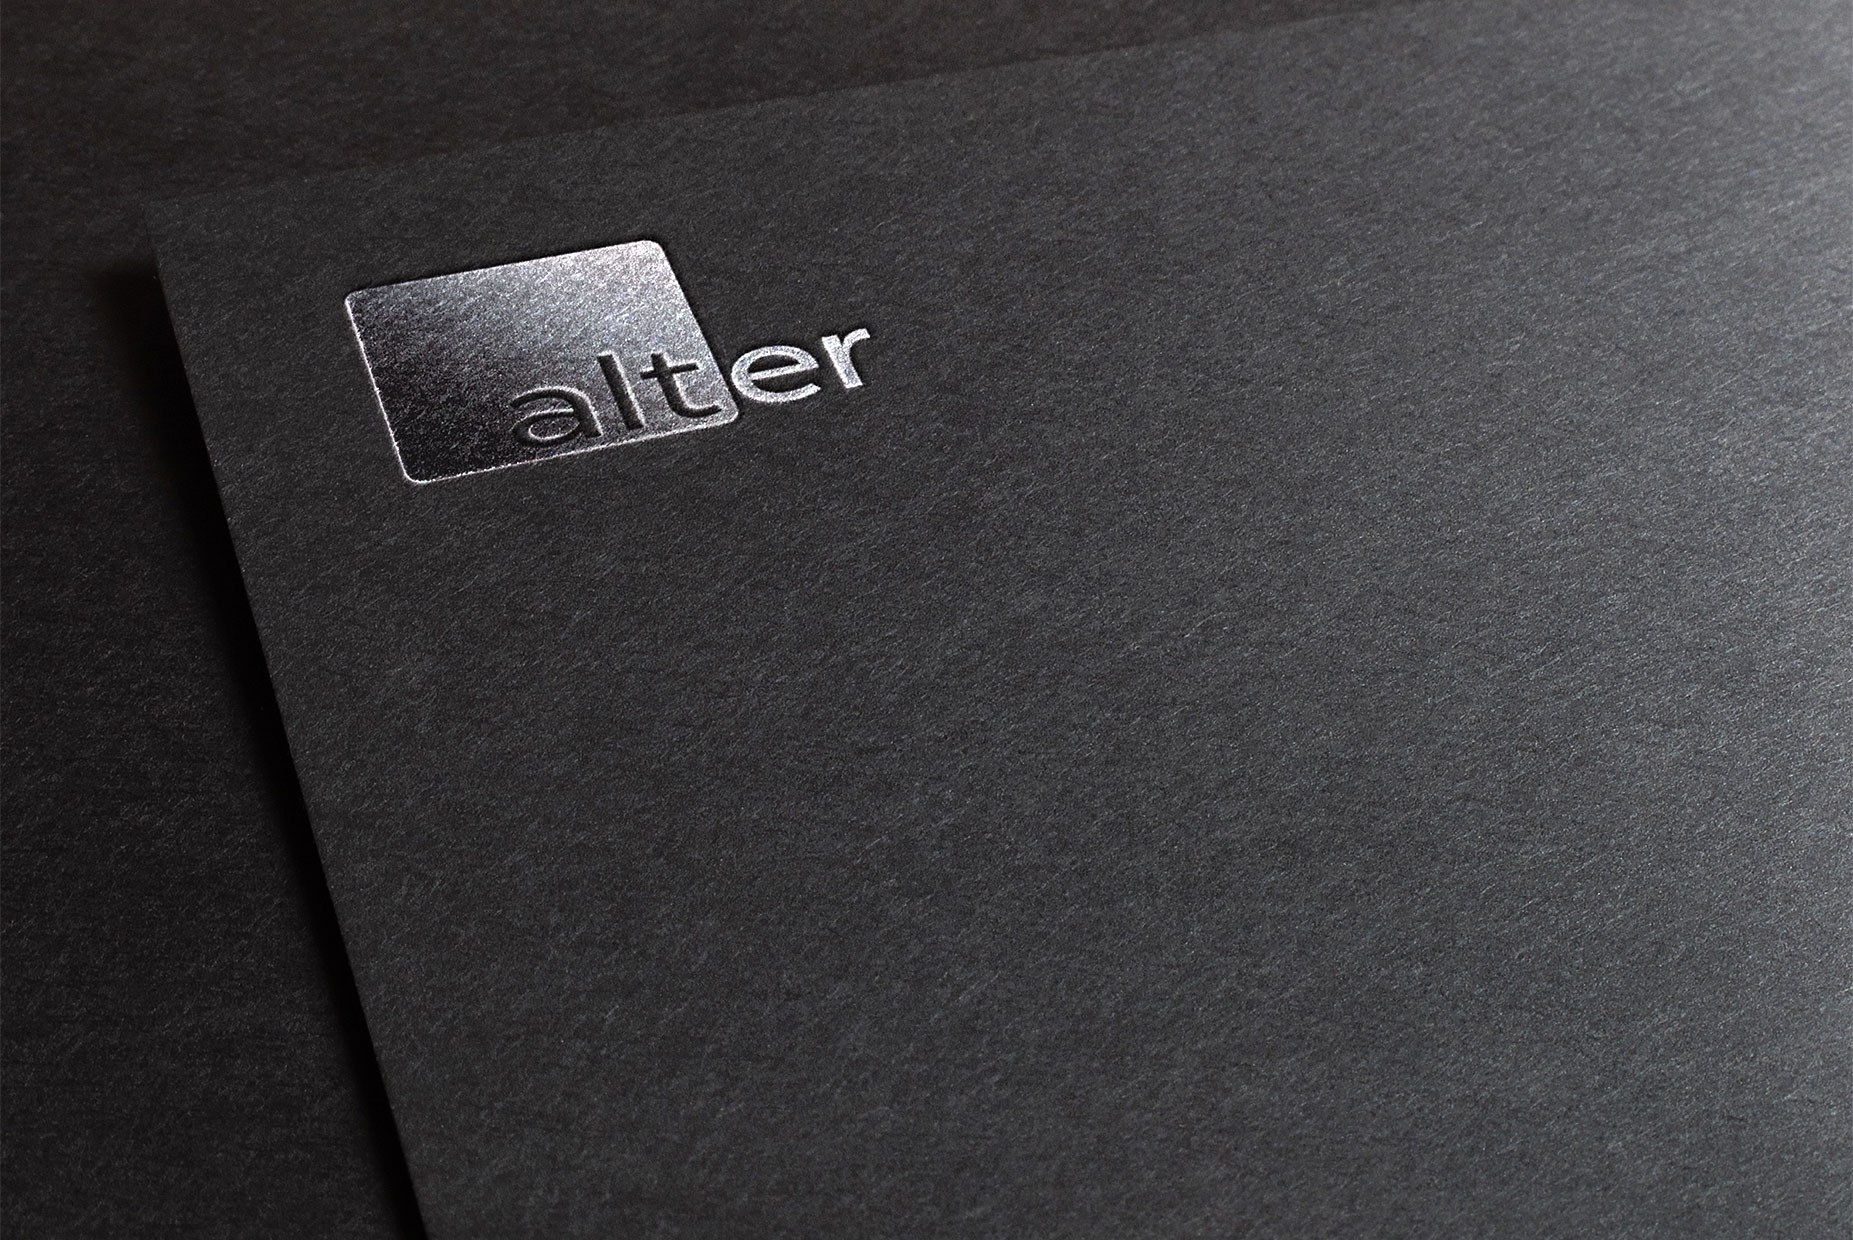 The Alter logo embossed in silver on black paper.